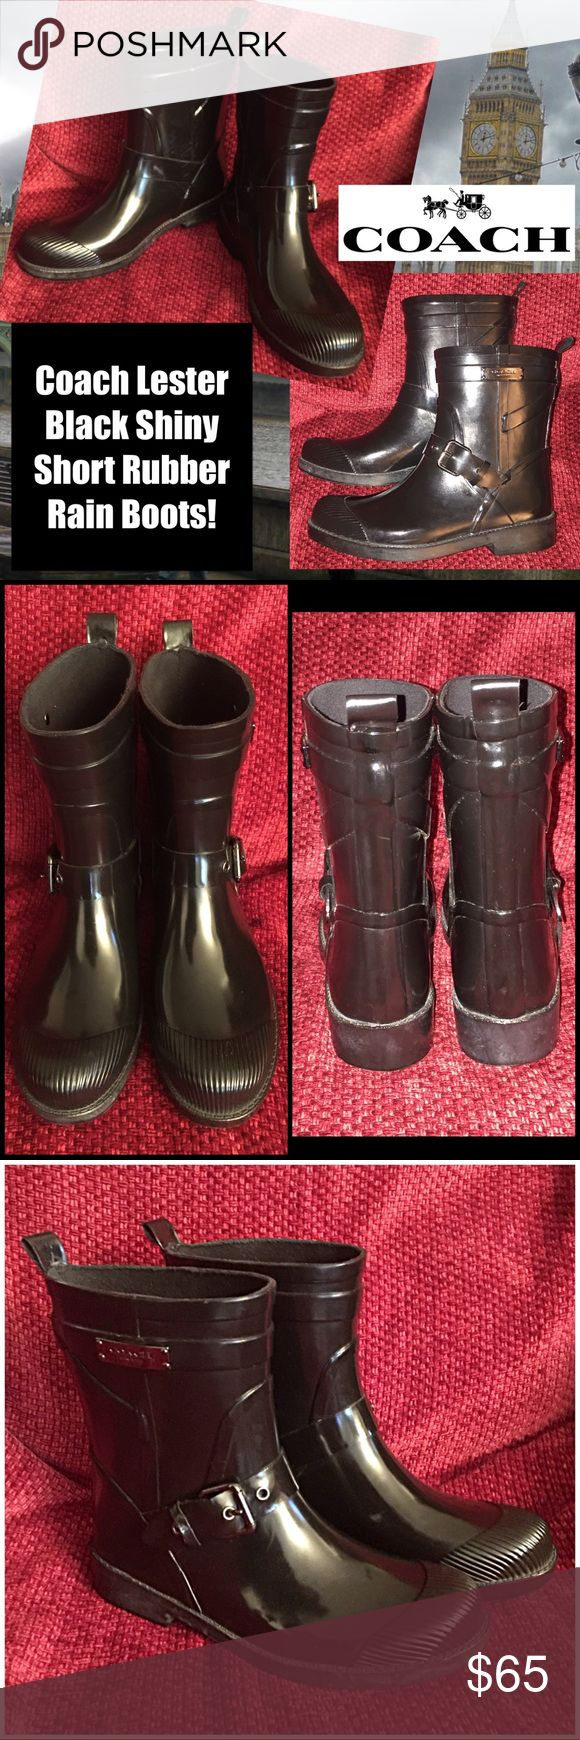 Coach Lester Black Shiny Short Rubber Rain Boots! Coach Lester Black Shiny Short Rubber Rain Boots! Features: 100% authentic, black rubber boots & soles, textured cap toe & ankle, buckle strap style & water & weatherproof. Size 6B. Like new - excellent condition! Coach Shoes Winter & Rain Boots